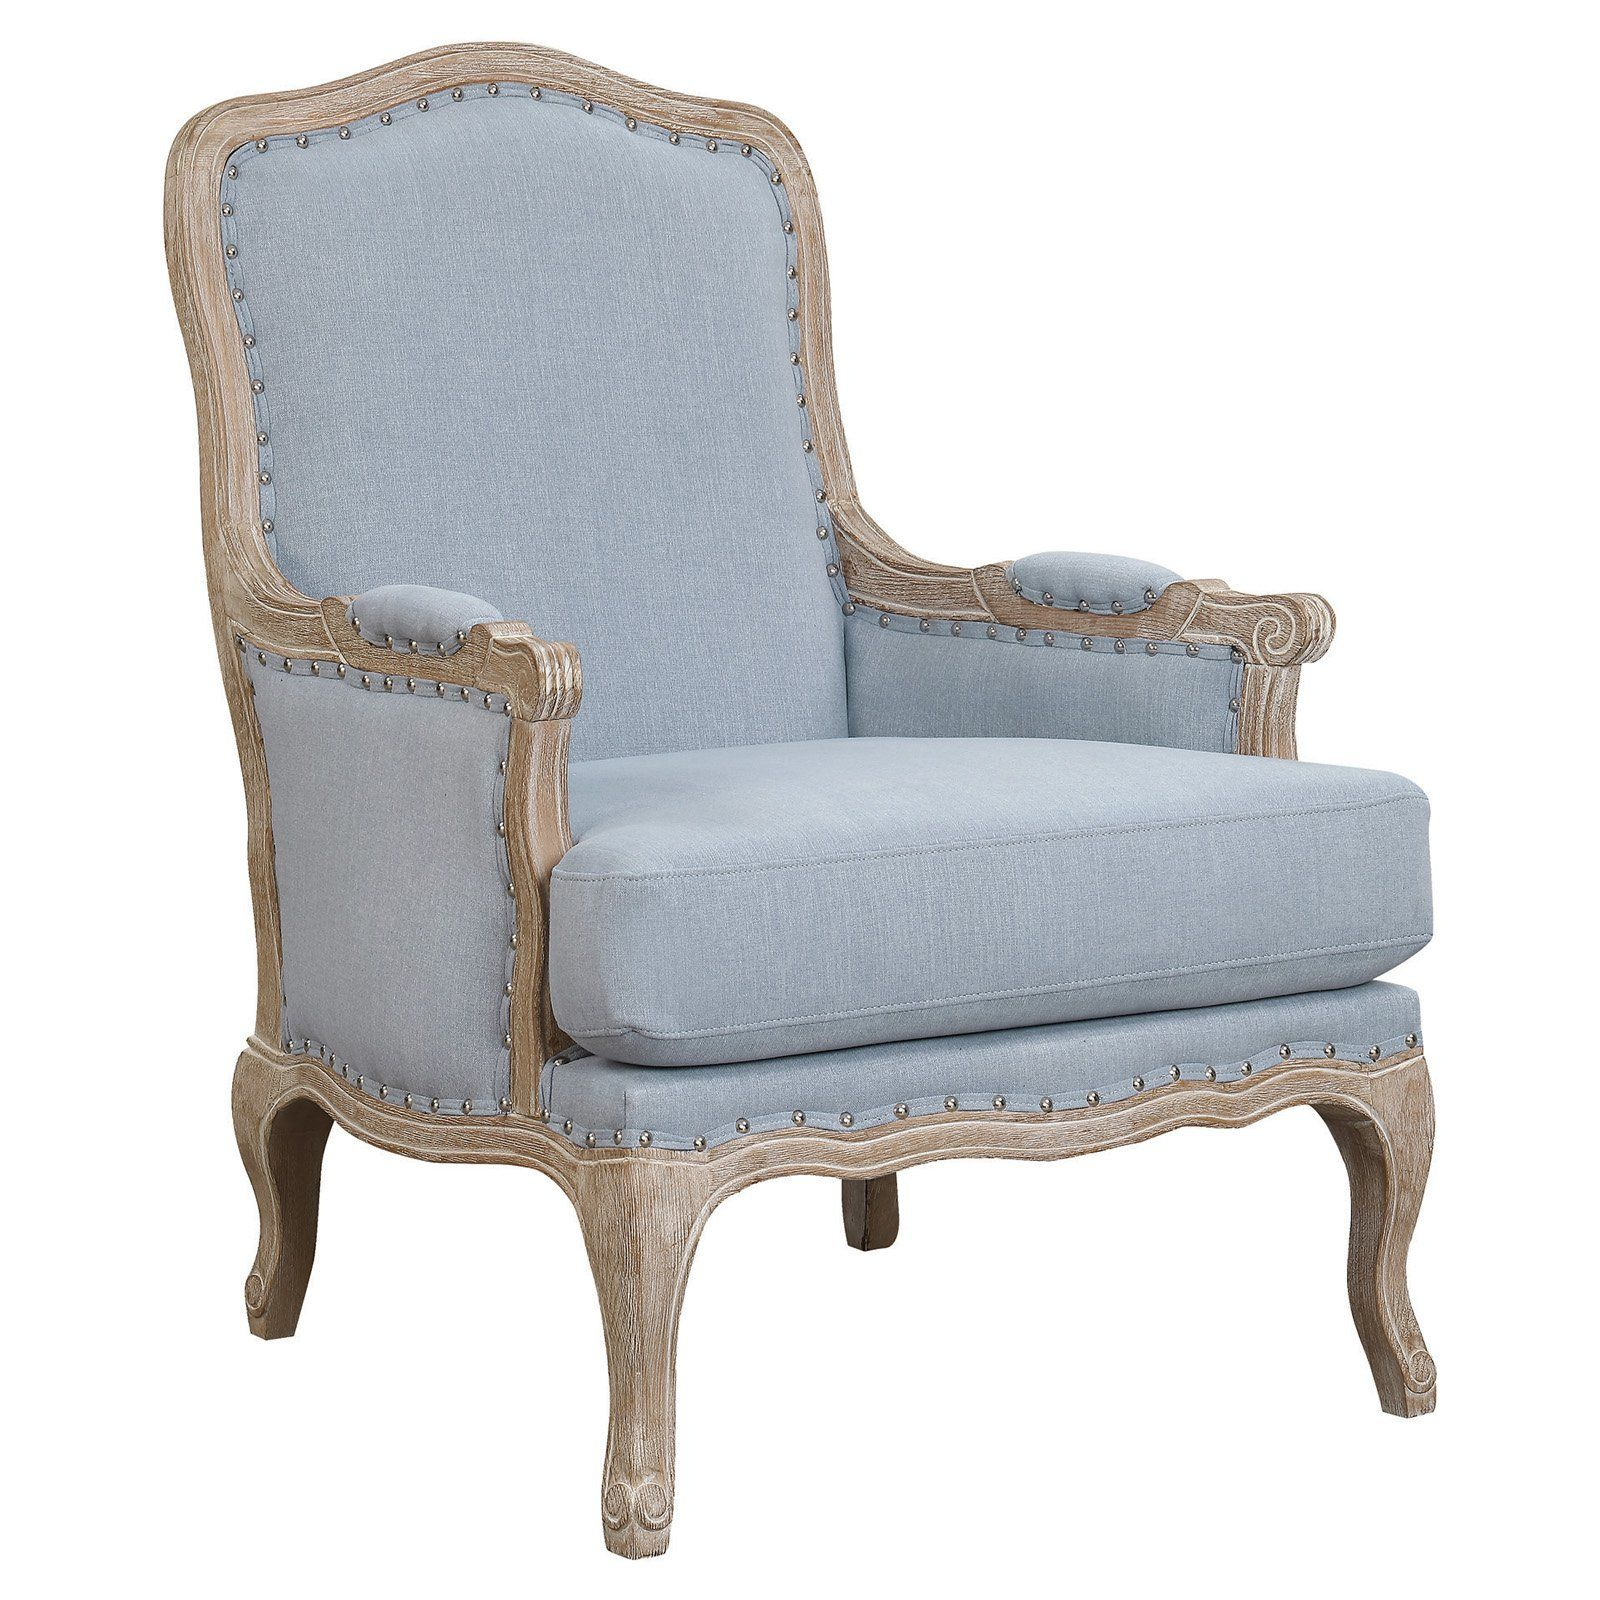 Picket House Furnishings Regal Arm Chair Light Blue Products In